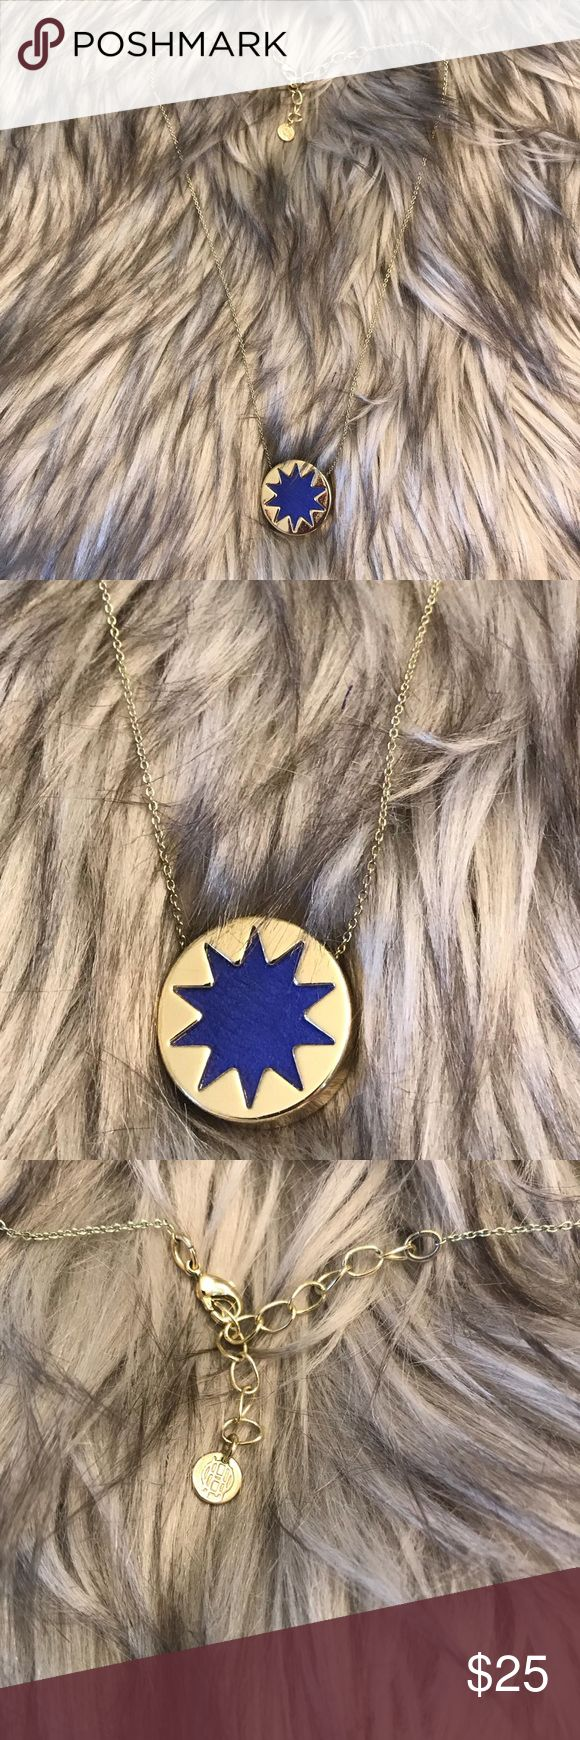 """House of Harlow Small Pendant Necklace Gold Blue Worn only a few times. Total Chain length ~18"""" Pendant width 3/4"""" - no box House of Harlow 1960 Jewelry Necklaces"""